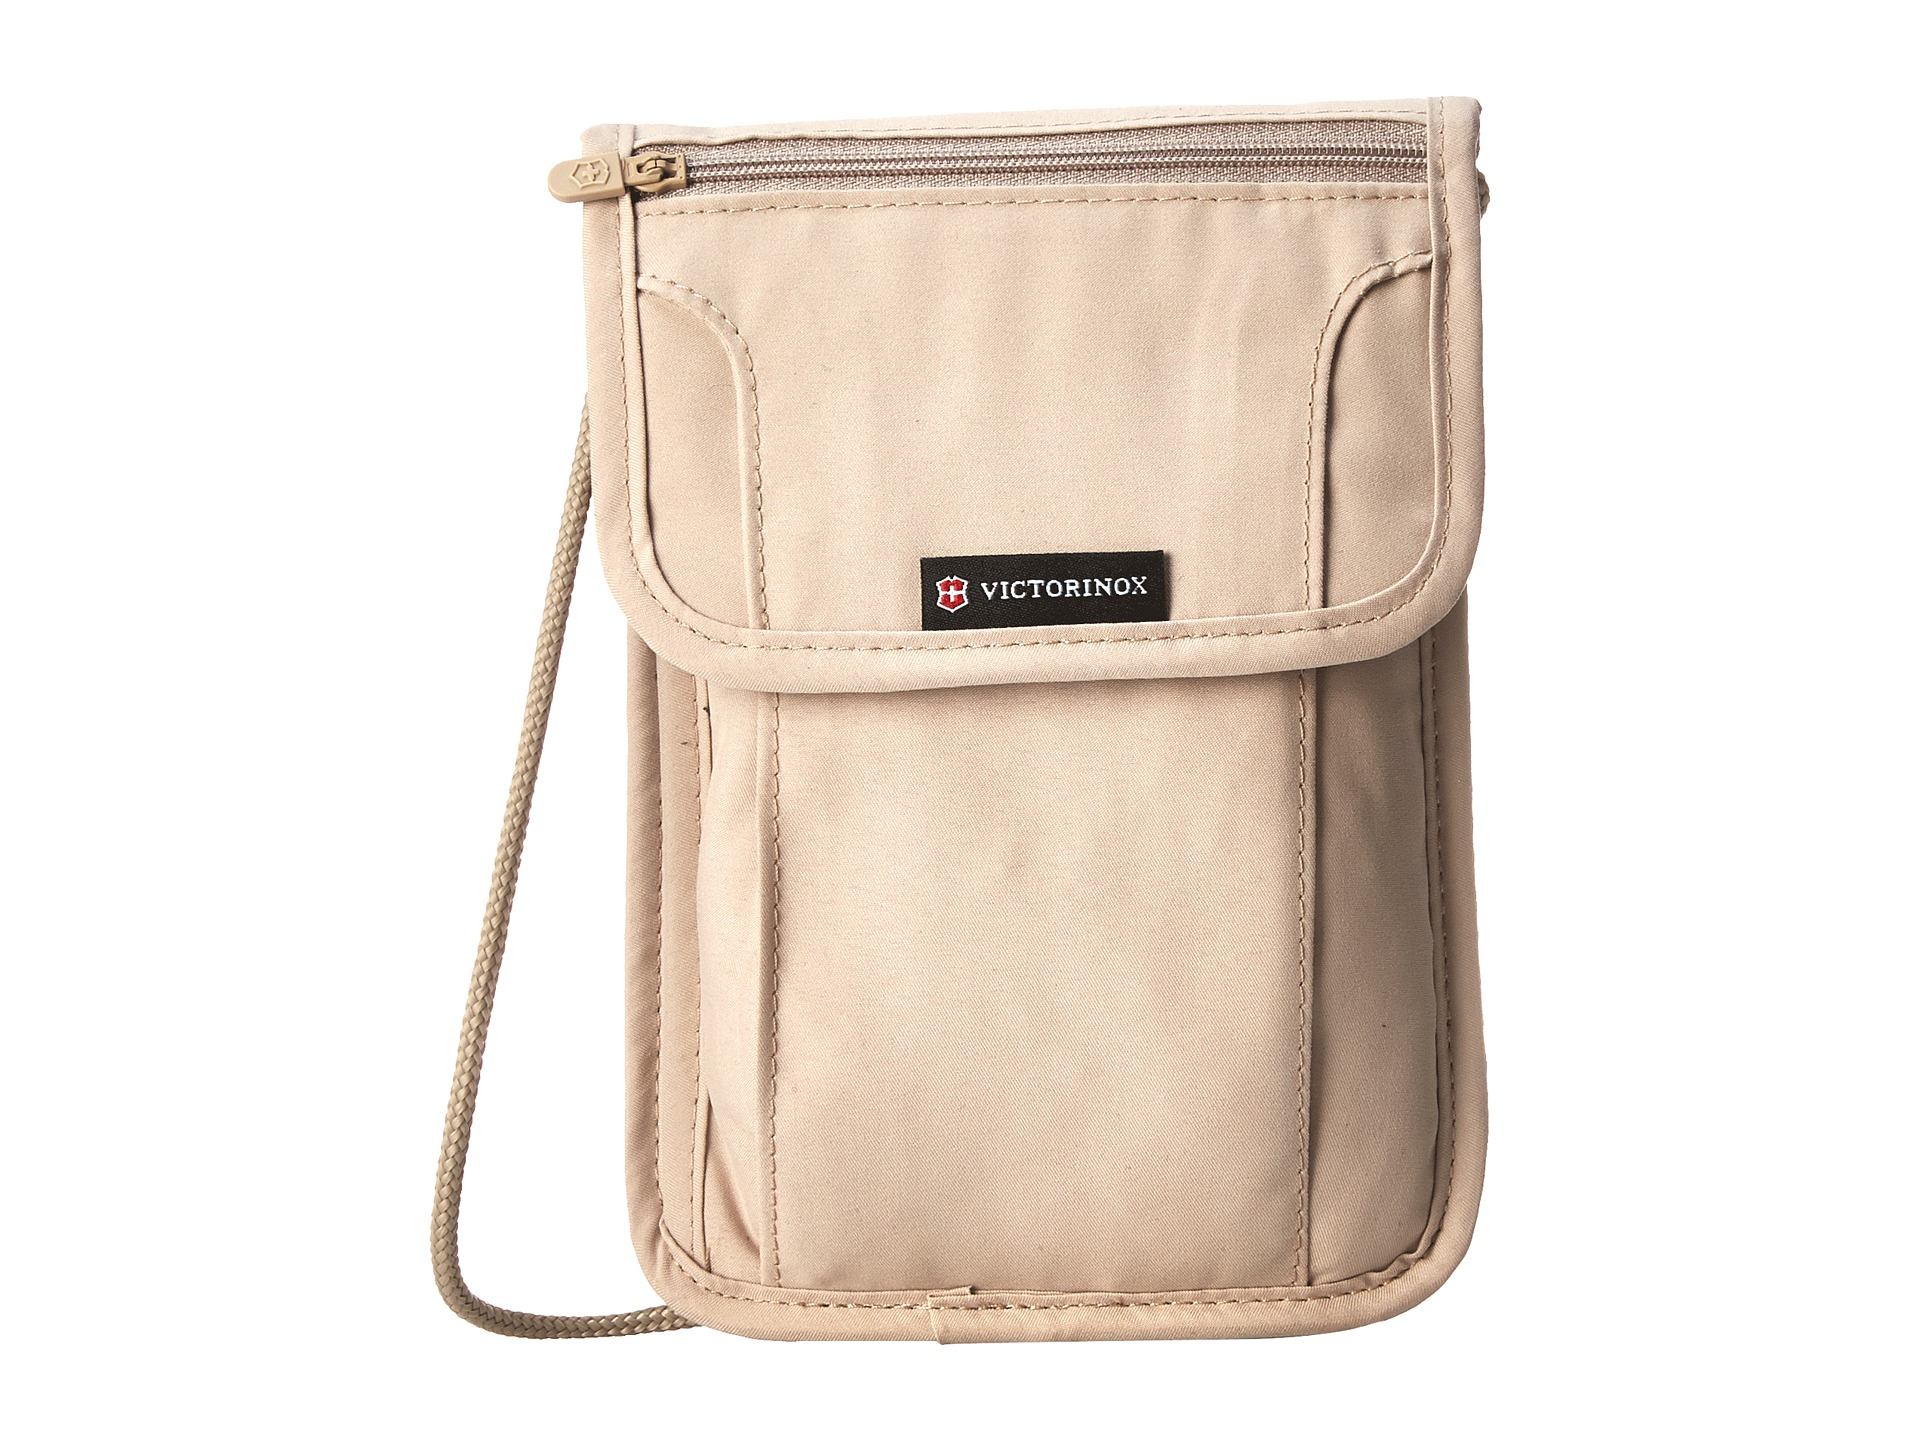 046e1ce2779d Lyst - Victorinox Deluxe Concealed Security Pouch W  Rfid Protection ...